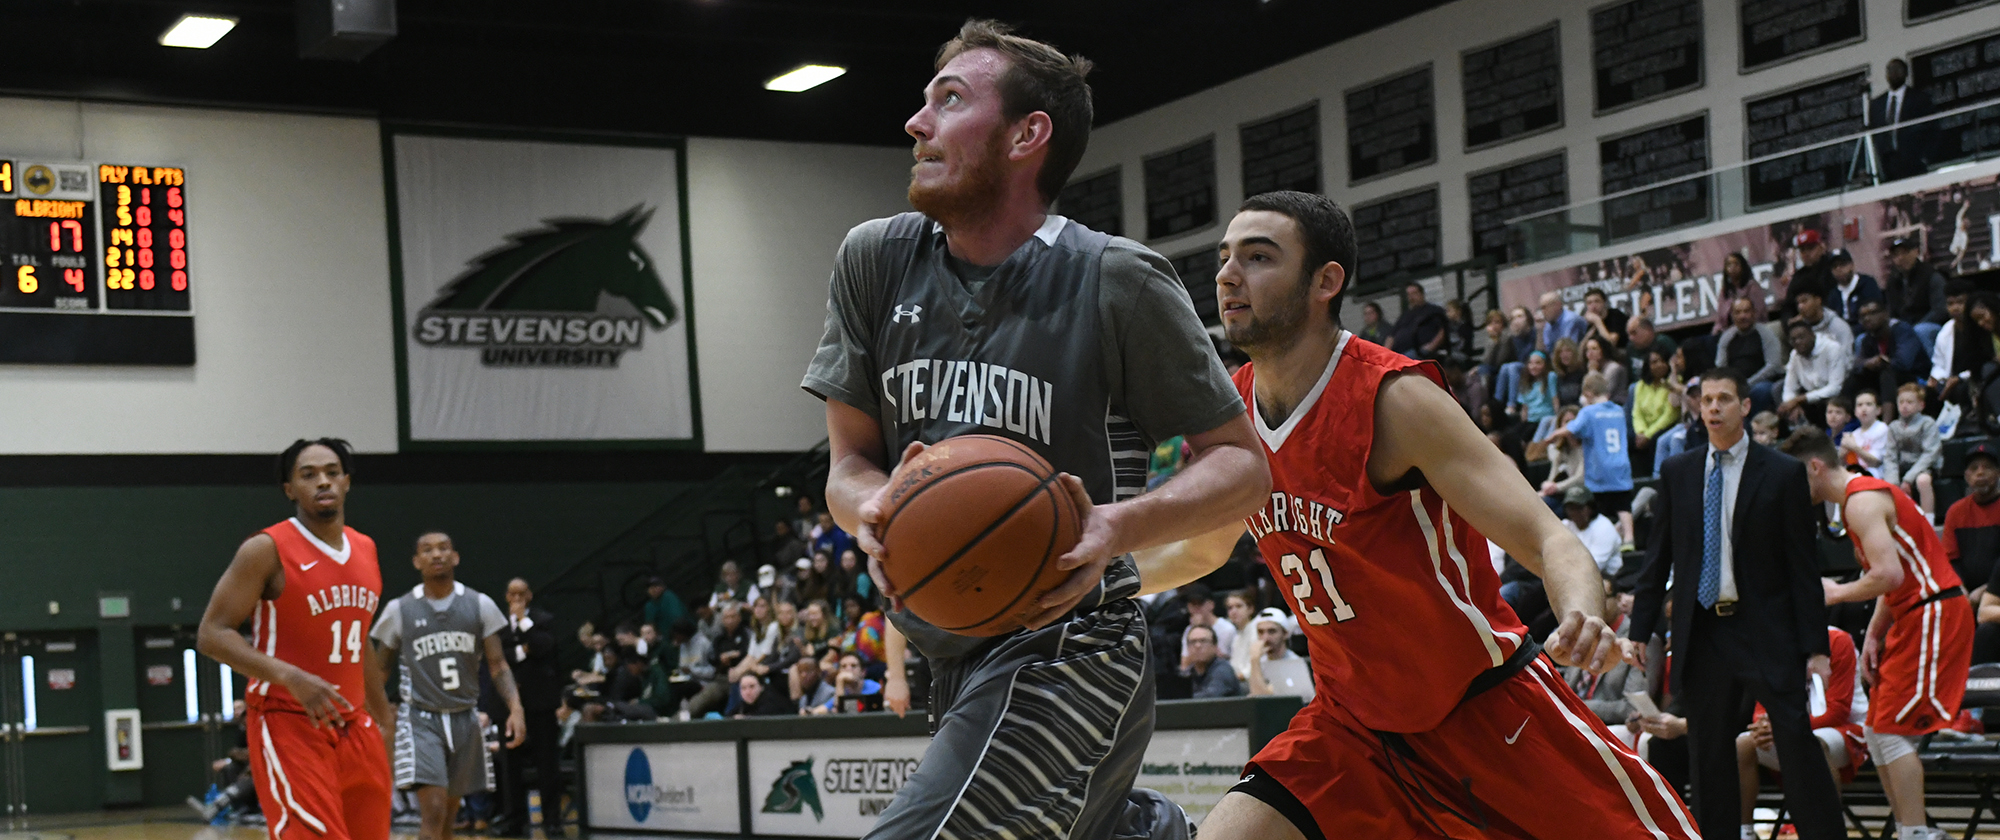 Men's Basketball Tips Off November 10